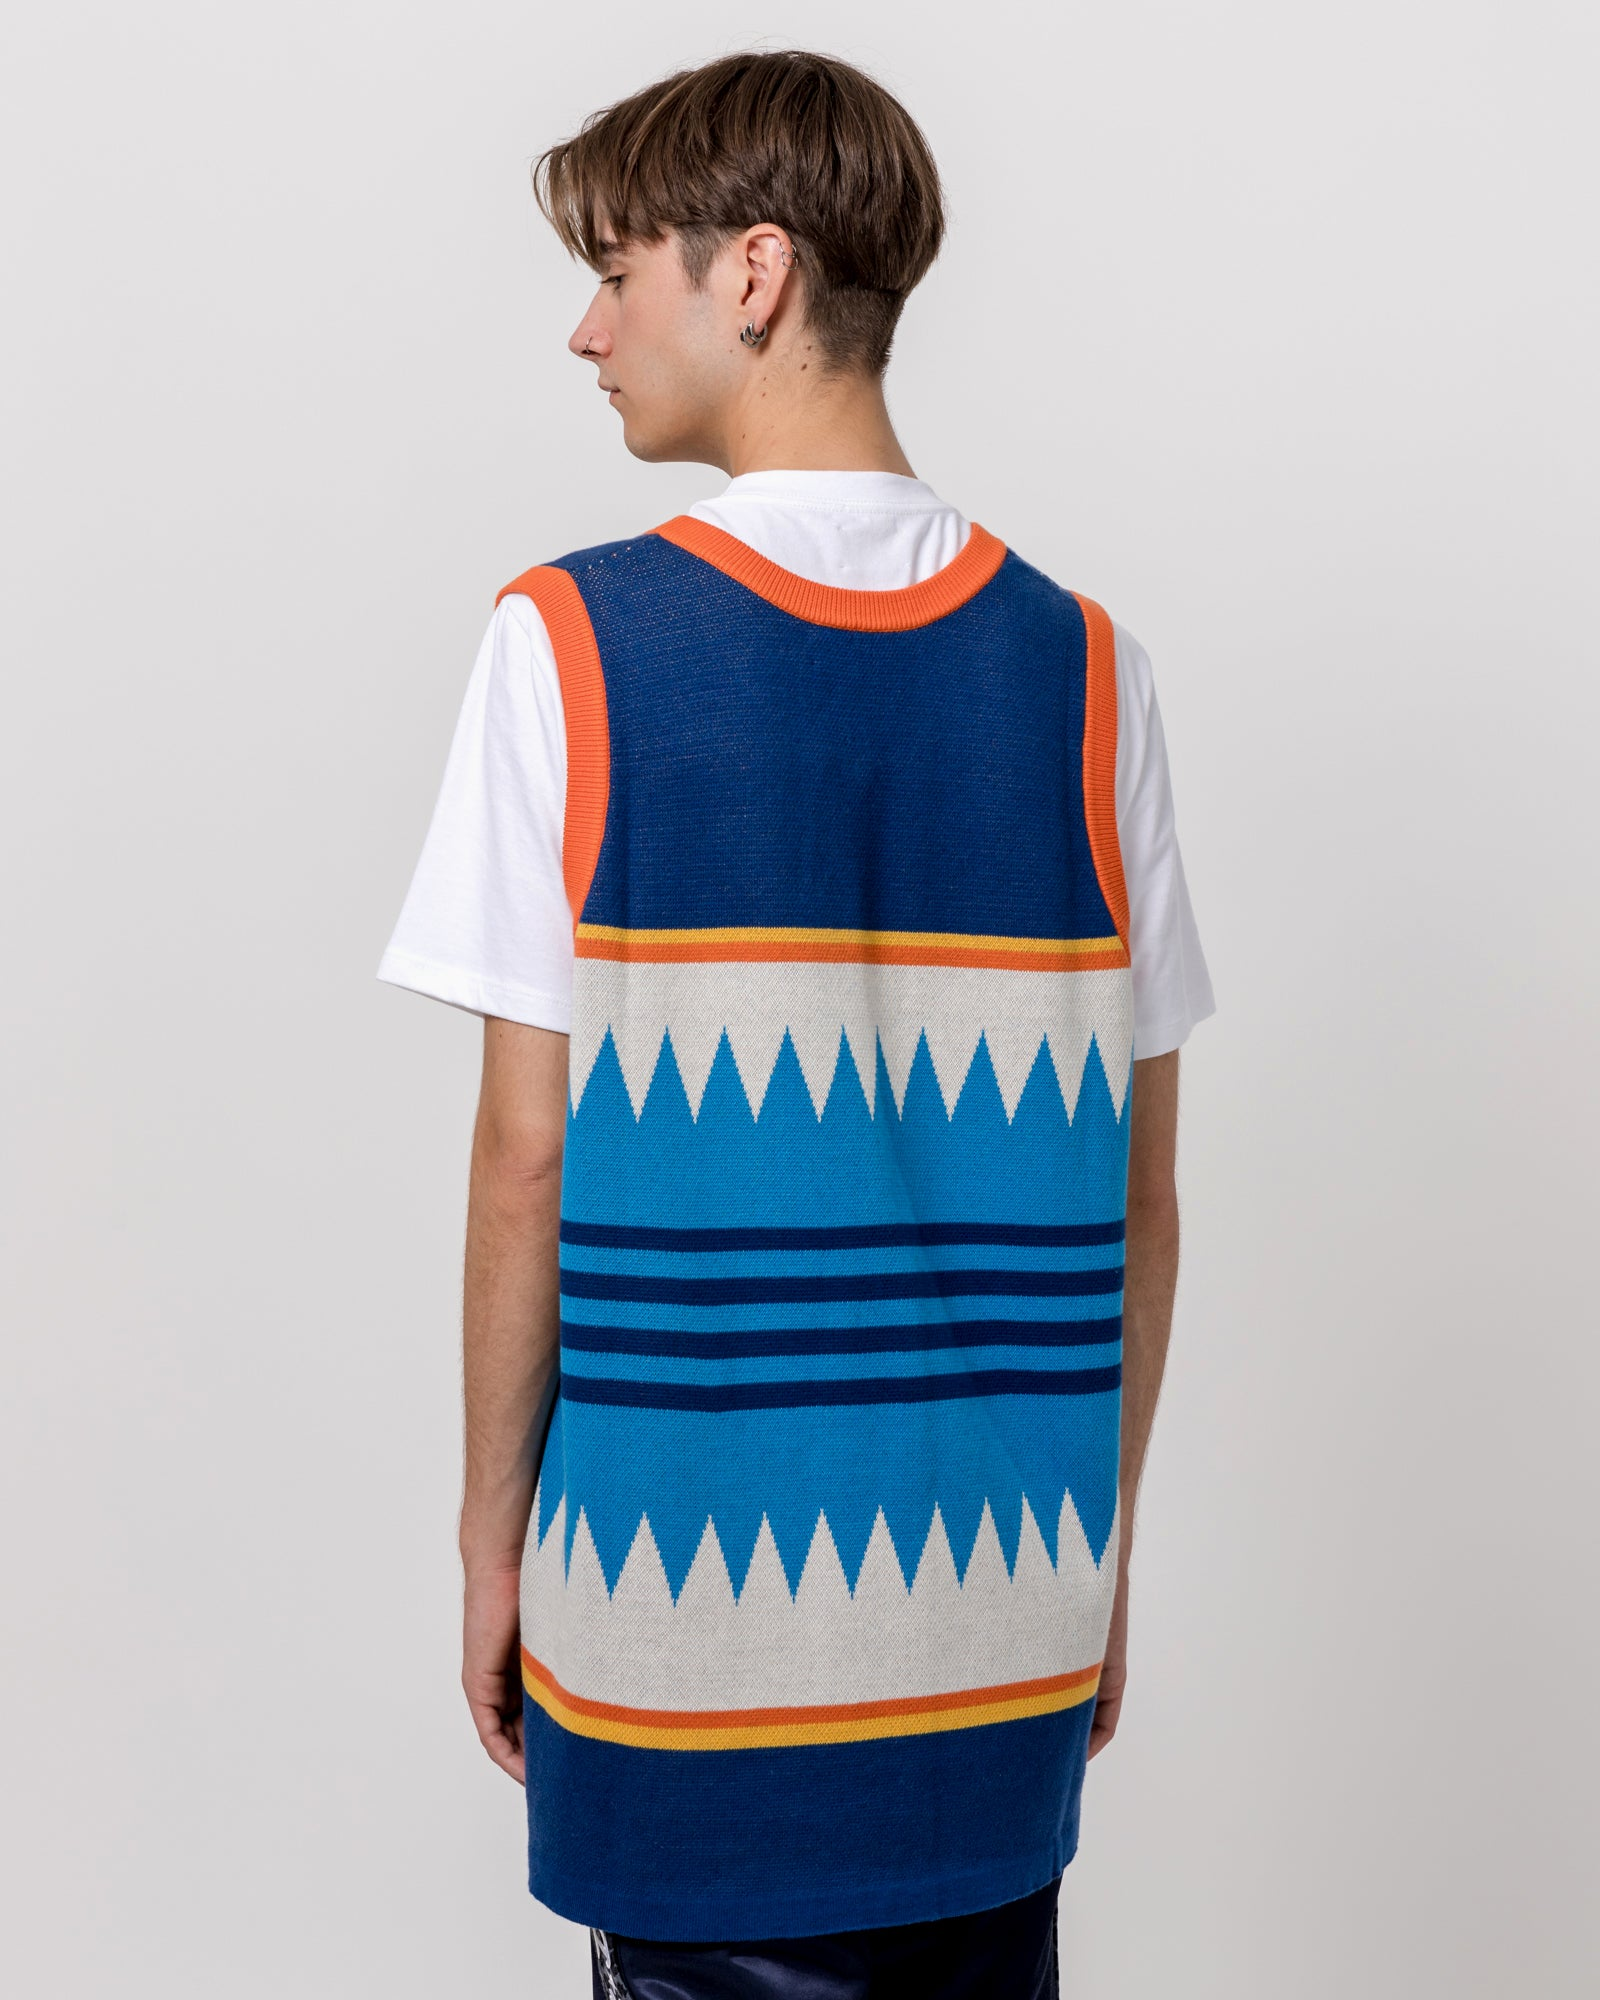 Basketball Tank Sweater in Blue